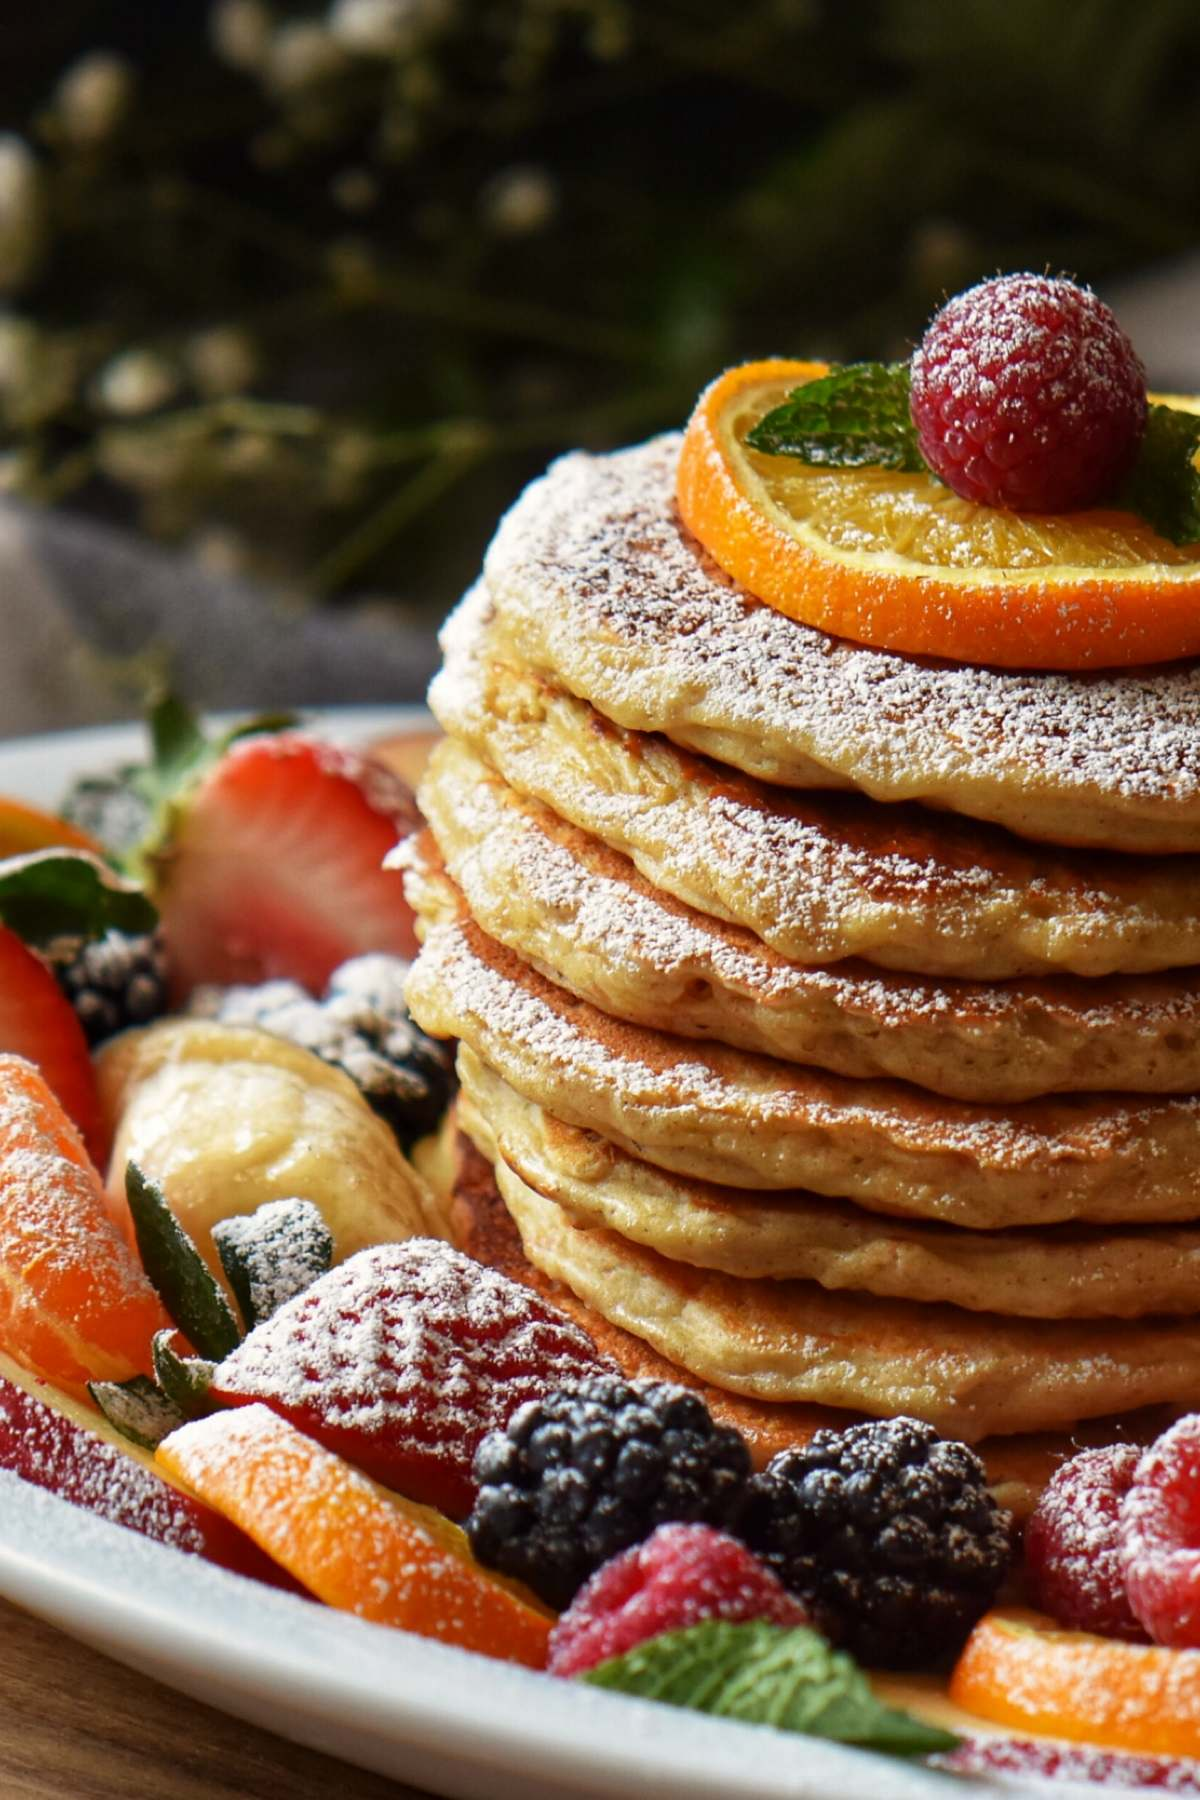 A stack of oatmeal pancakes dusted with icing sugar, garnished with a slice of orange and a raspberry.